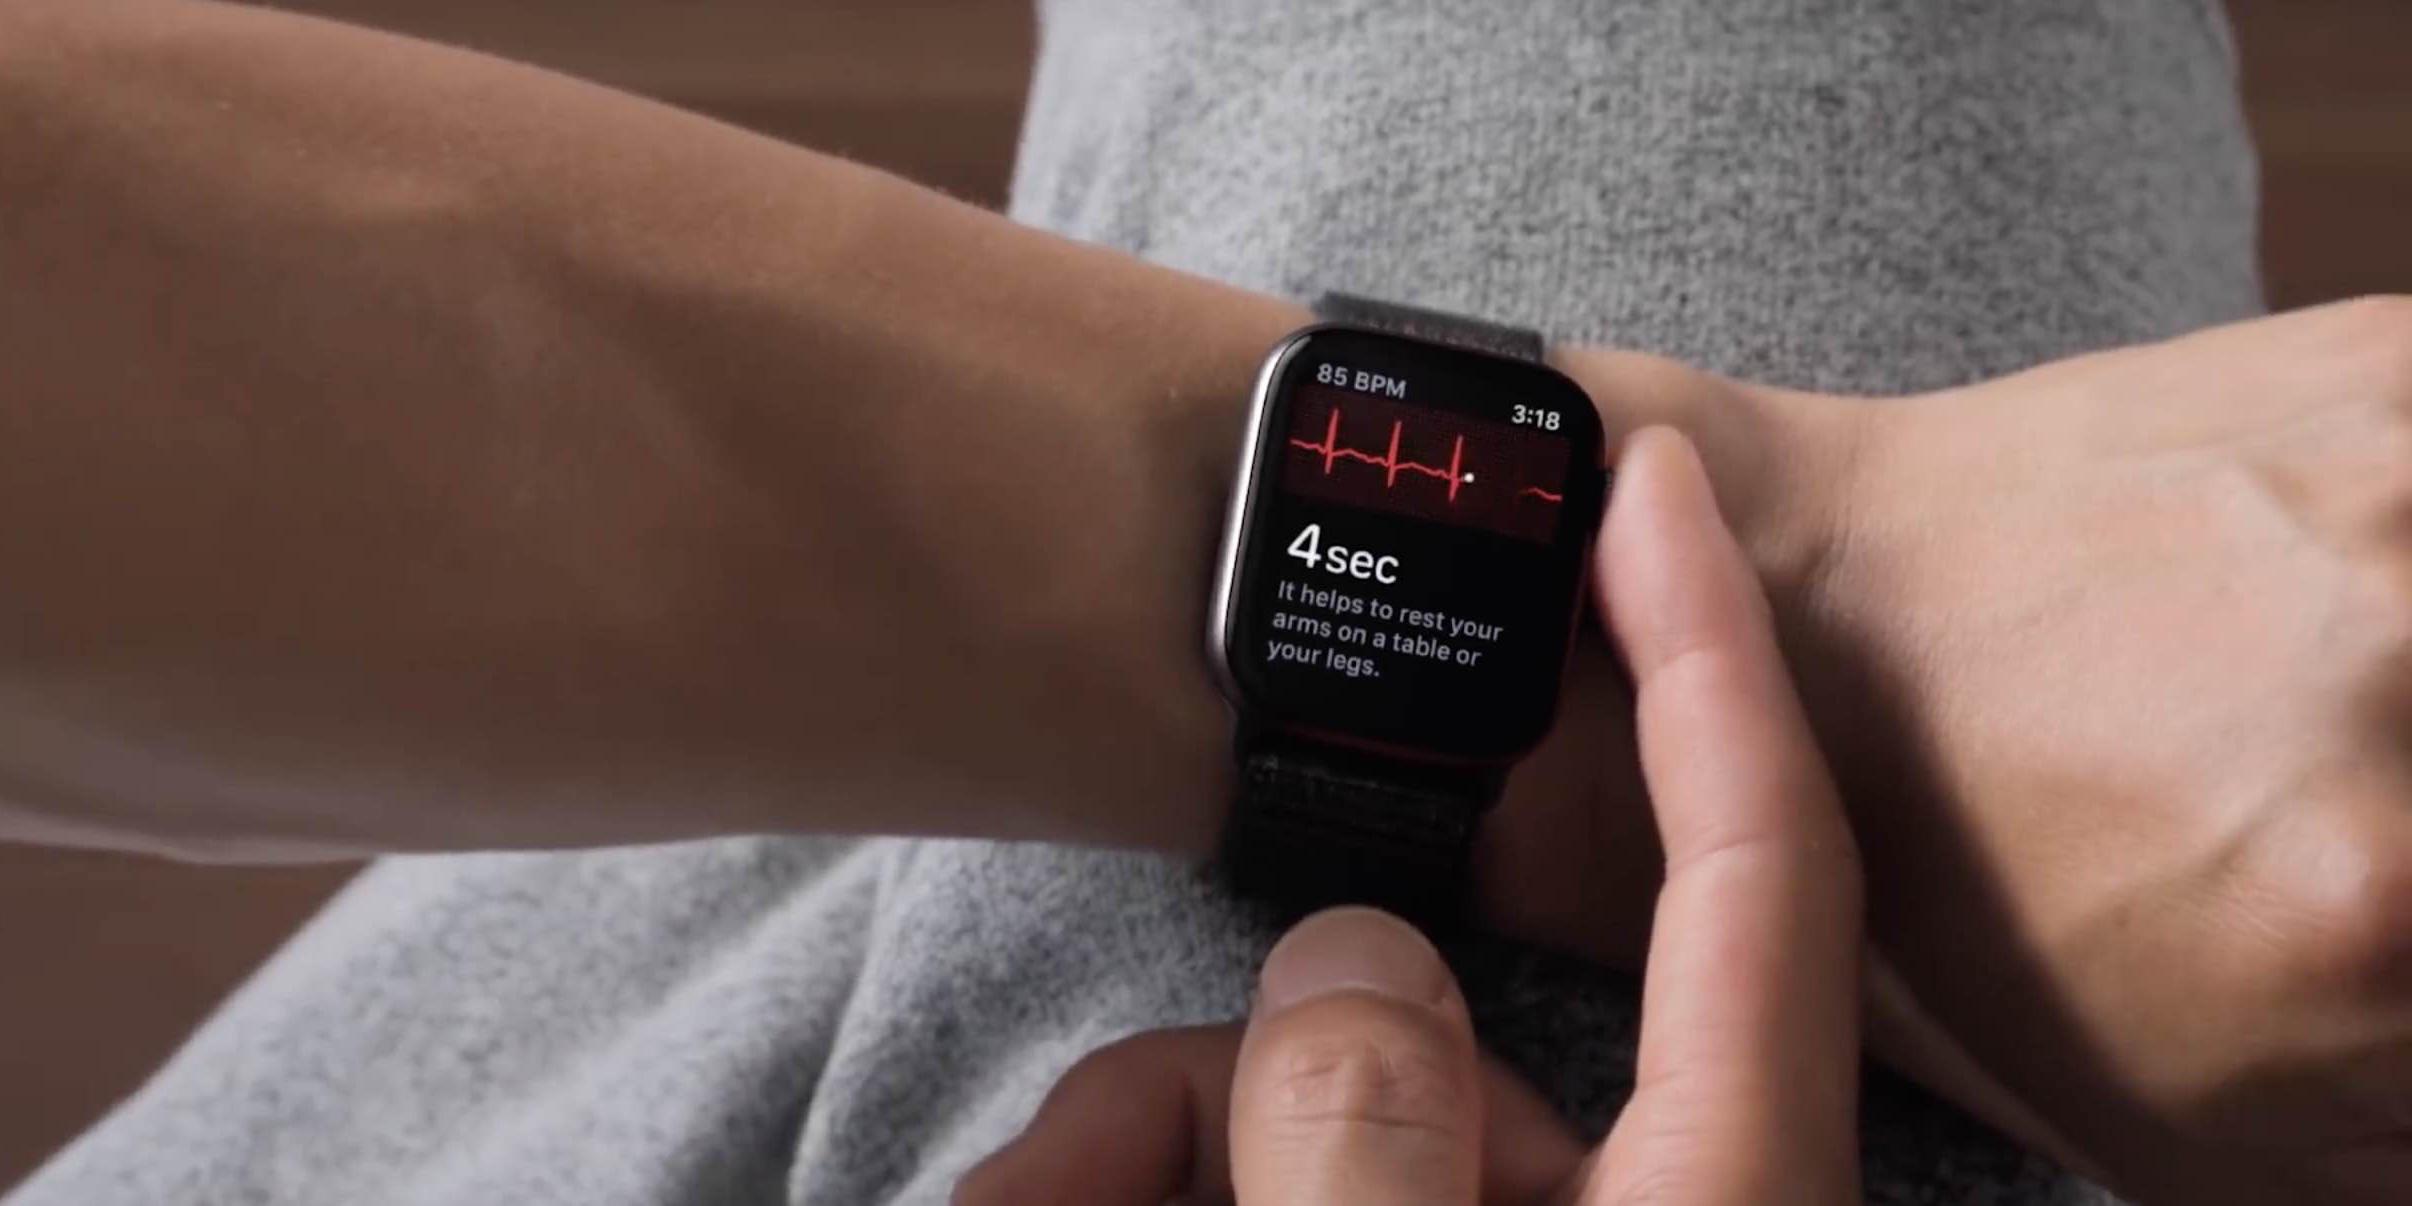 How to get the ECG app on Apple Watch - 9to5Mac